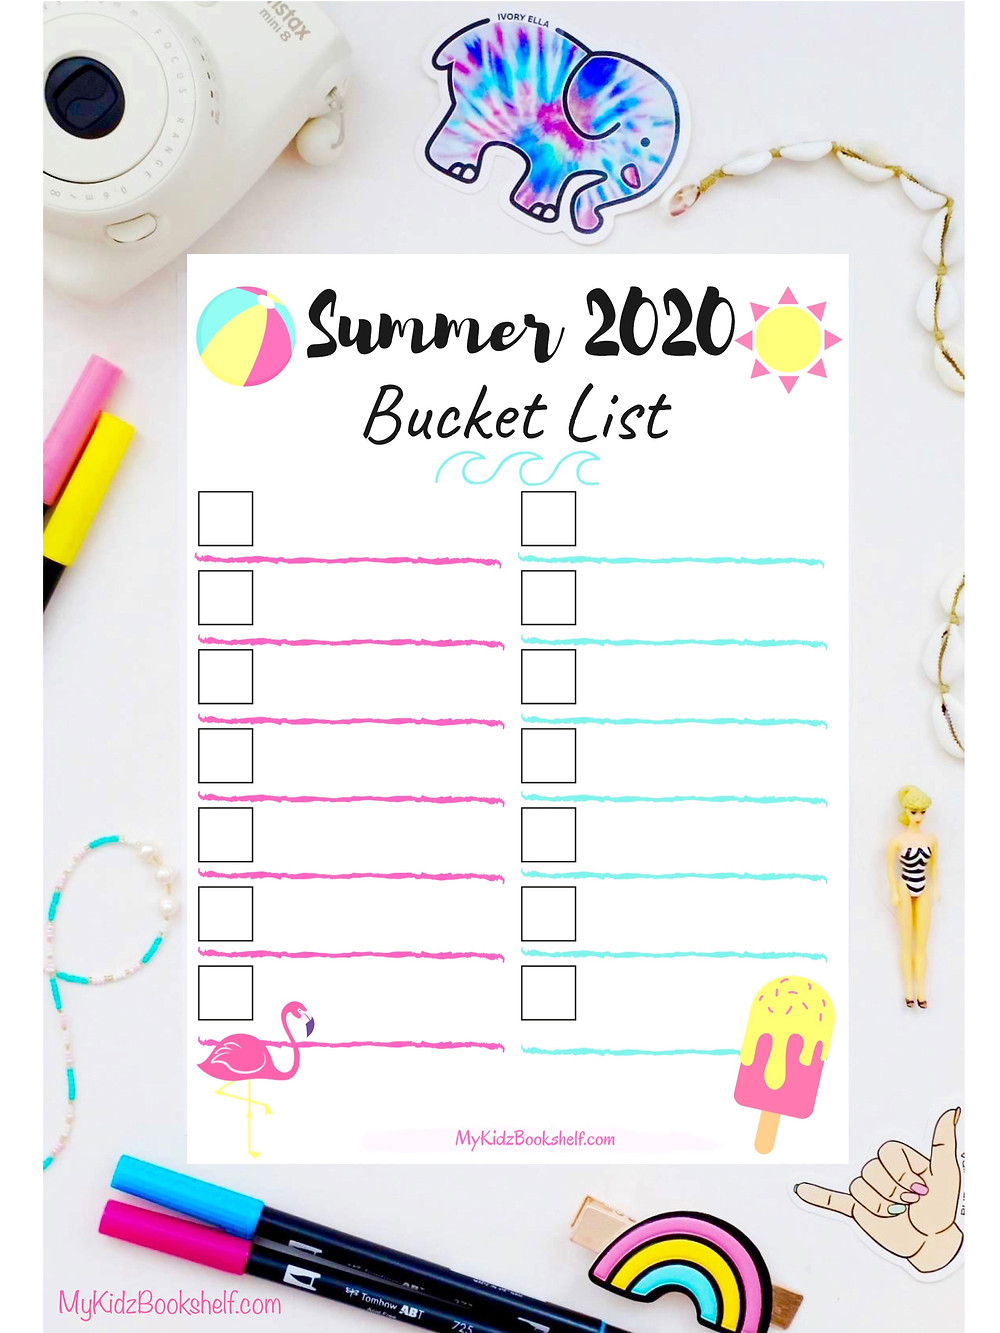 Summer 2020 Bucket List Free Printable blank with beach ball and sun